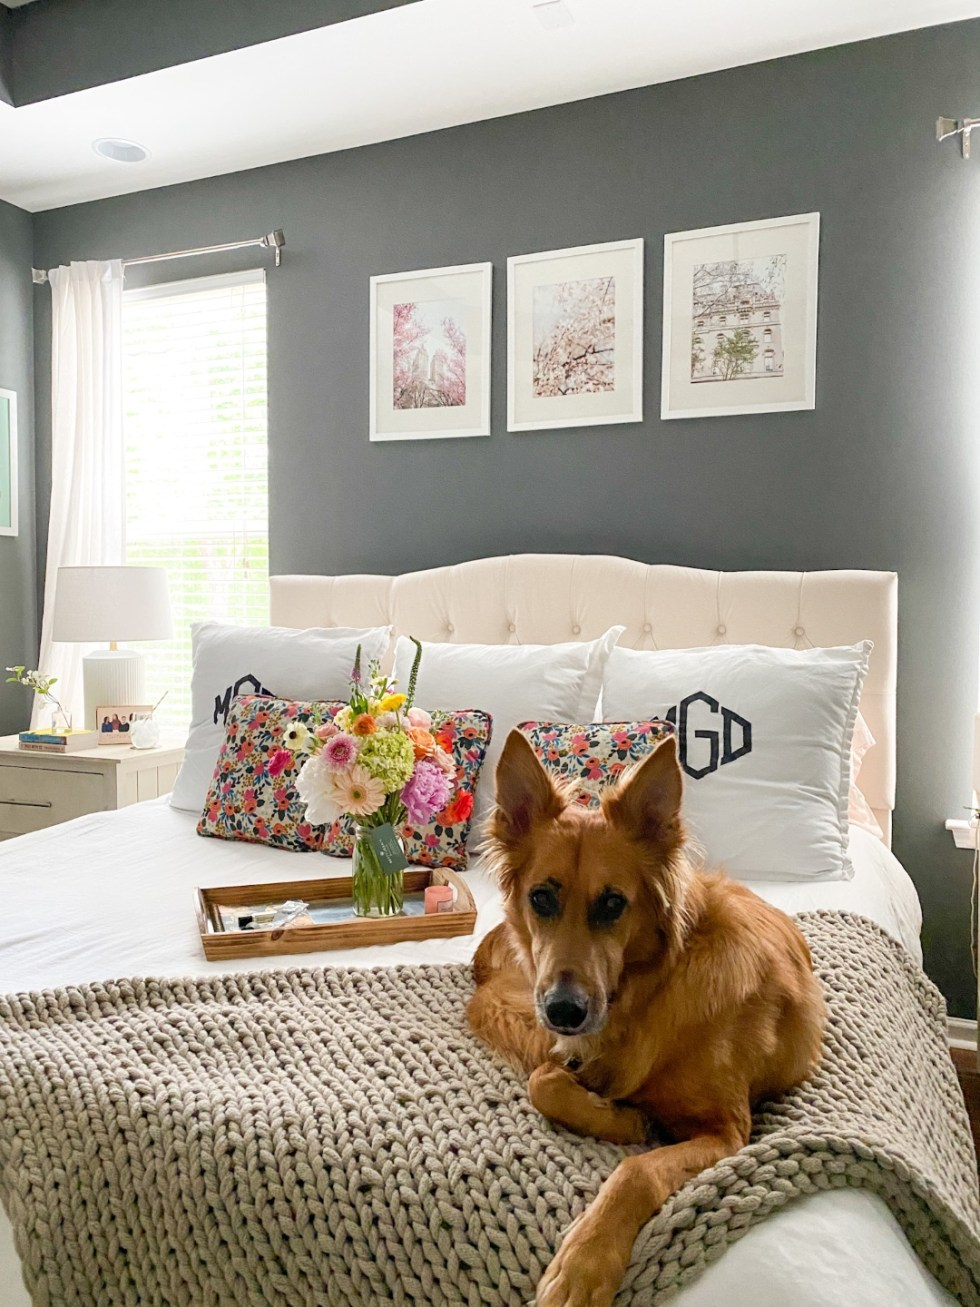 Home Decor: 7 Spring Prints for your Gallery Wall - I'm Fixin' To - @imfixintoblog | Spring Prints by popular NC life and style blog, I'm Fixin' To: image of a dog sitting on a bed with a cream tuft head board, white bedding, floral print throw pillows and spring prints in white frames hanging above it on a grey accent wall.